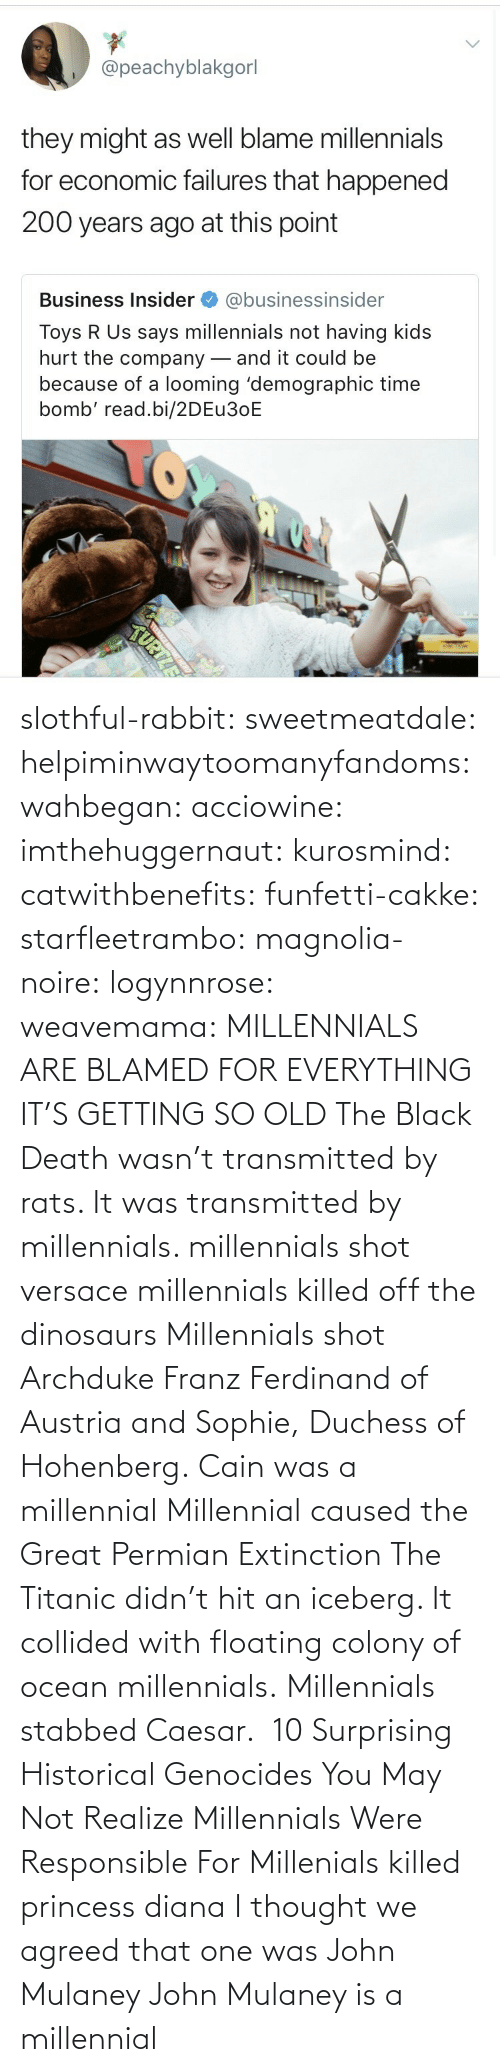 Colony: slothful-rabbit: sweetmeatdale:  helpiminwaytoomanyfandoms:   wahbegan:  acciowine:  imthehuggernaut:  kurosmind:   catwithbenefits:  funfetti-cakke:  starfleetrambo:  magnolia-noire:  logynnrose:  weavemama:  MILLENNIALS ARE BLAMED FOR EVERYTHING IT'S GETTING SO OLD  The Black Death wasn't transmitted by rats. It was transmitted by millennials.    millennials shot versace   millennials killed off the dinosaurs    Millennials shot Archduke Franz Ferdinand of Austria and Sophie, Duchess of Hohenberg.   Cain was a millennial  Millennial caused the Great Permian Extinction   The Titanic didn't hit an iceberg. It collided with floating colony of ocean millennials.  Millennials stabbed Caesar.   10 Surprising Historical Genocides You May Not Realize Millennials Were Responsible For    Millenials killed princess diana    I thought we agreed that one was John Mulaney     John Mulaney is a millennial